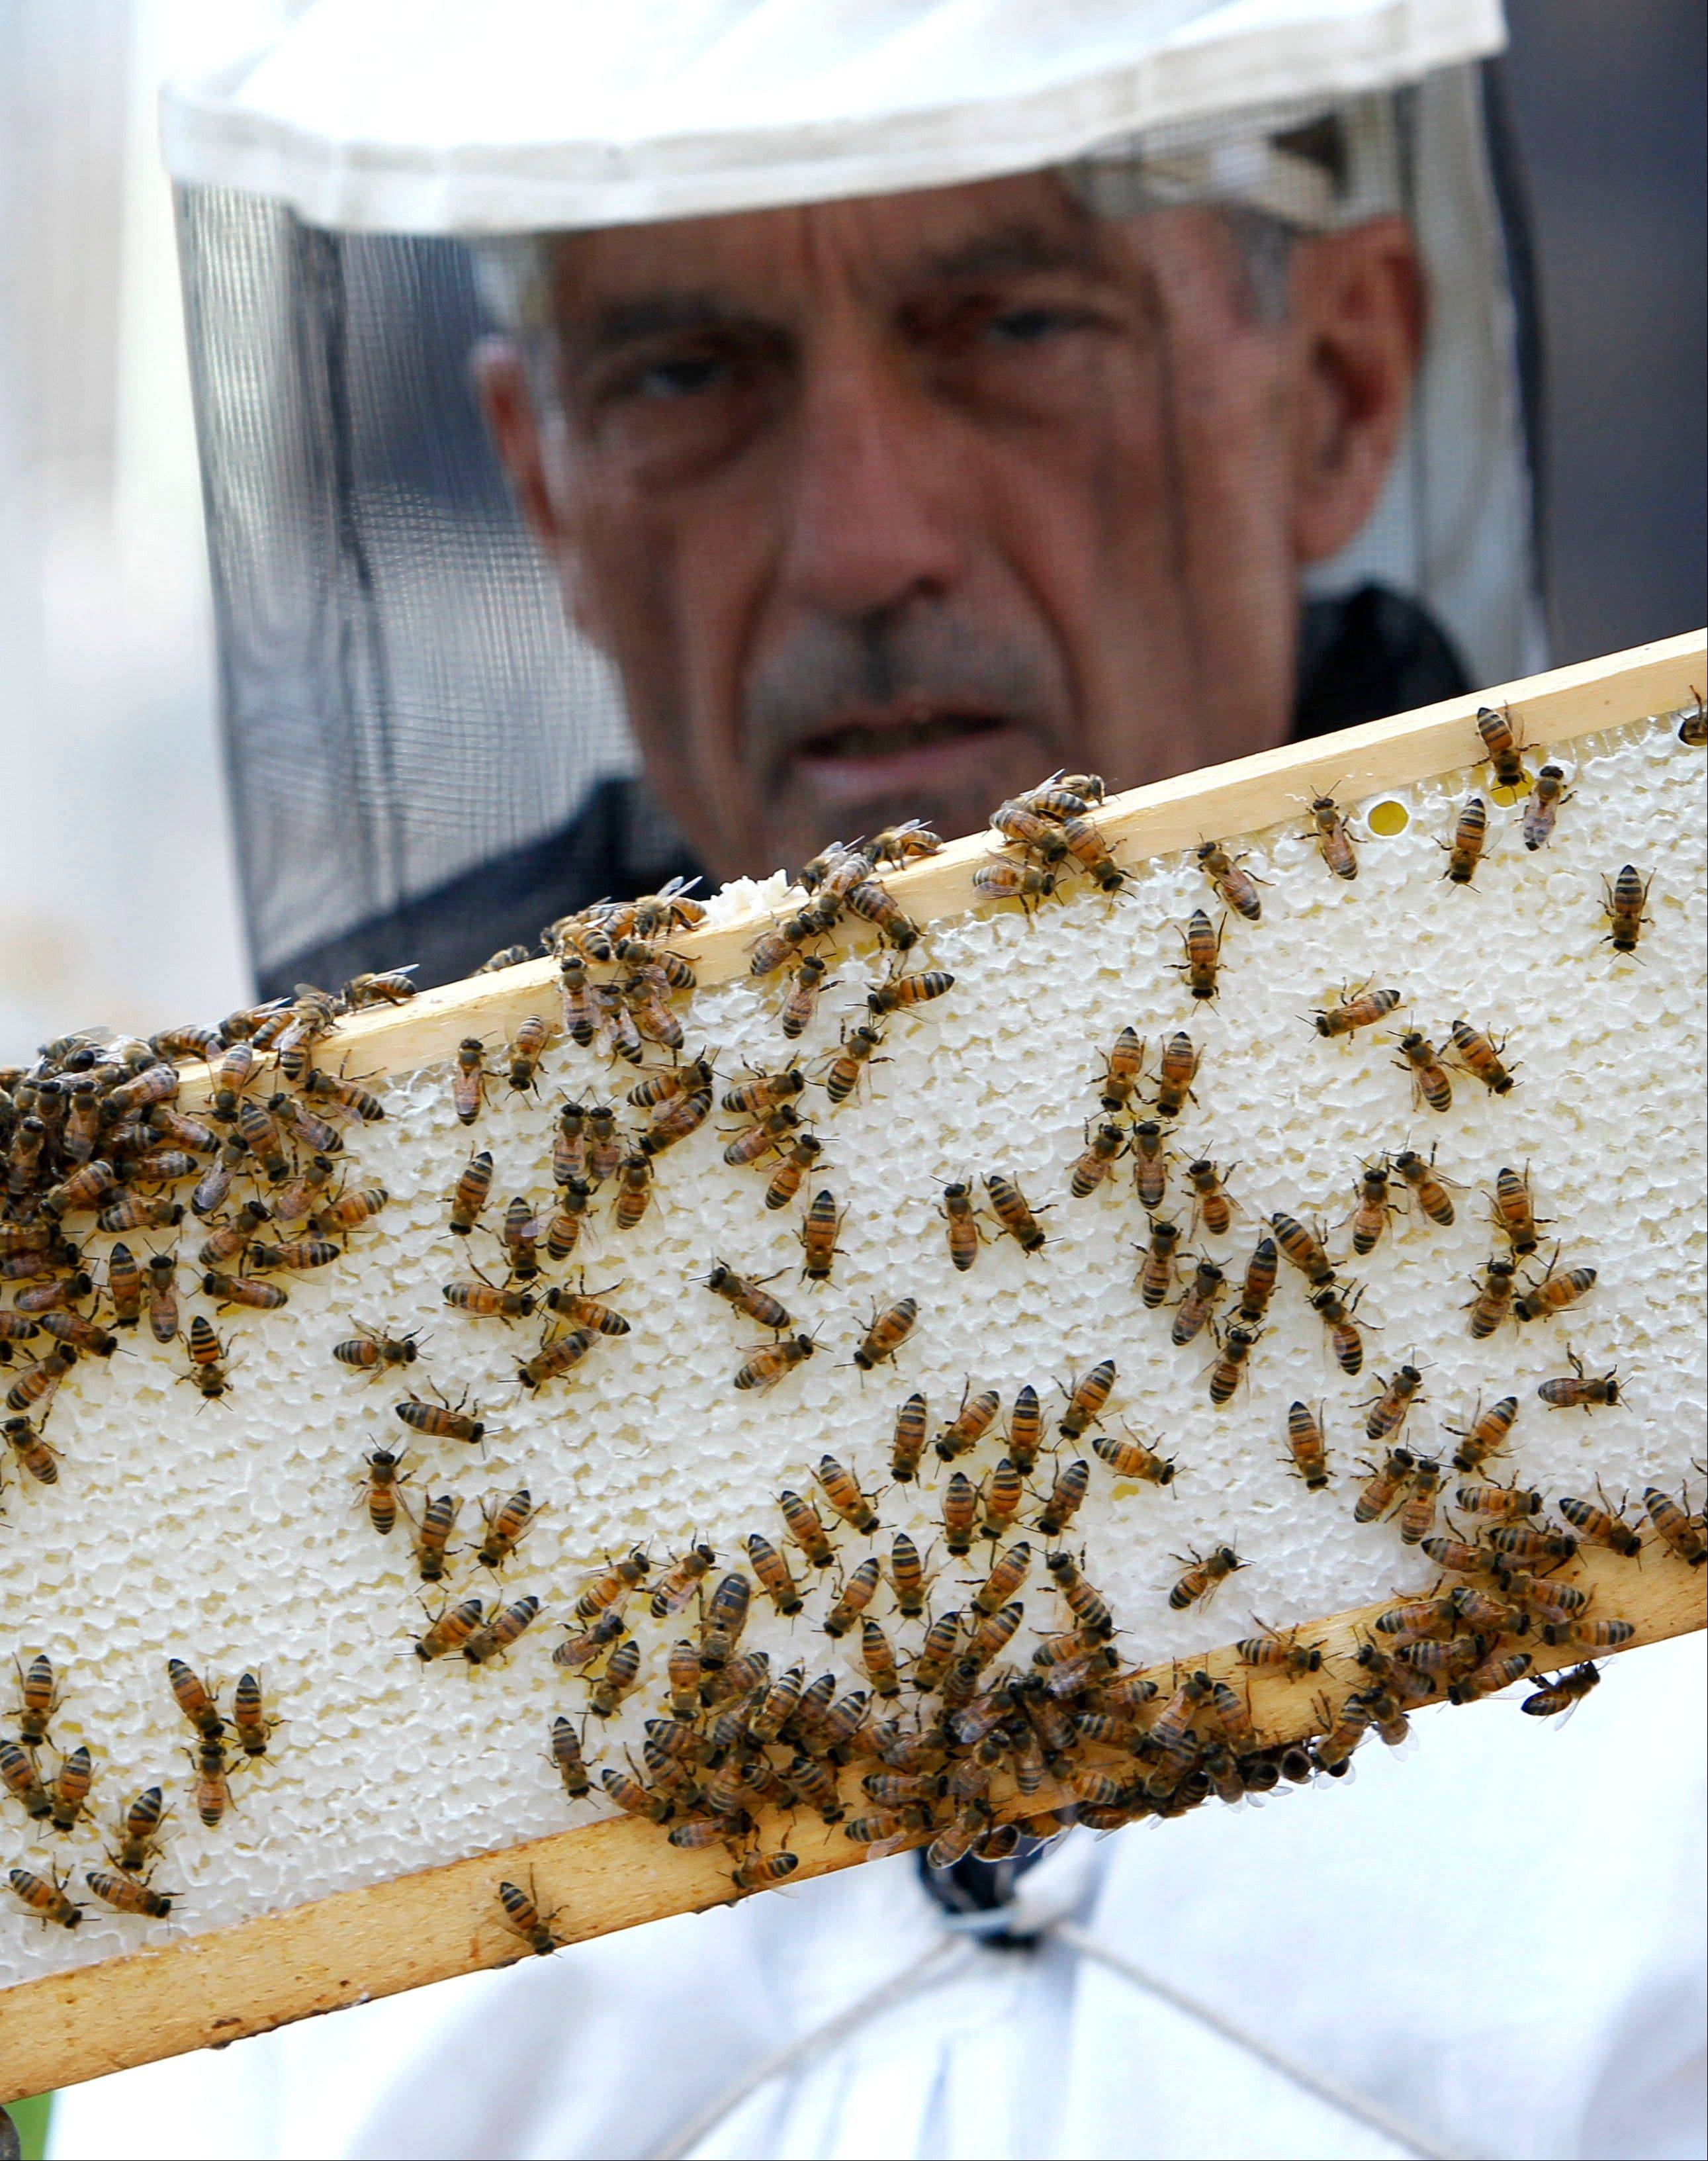 Beekeeper Michael Thompson examines a small section of a beehive frame on top of City Hall in Chicago.   , consisting of a beeswax comb, honey, brood and pollen,